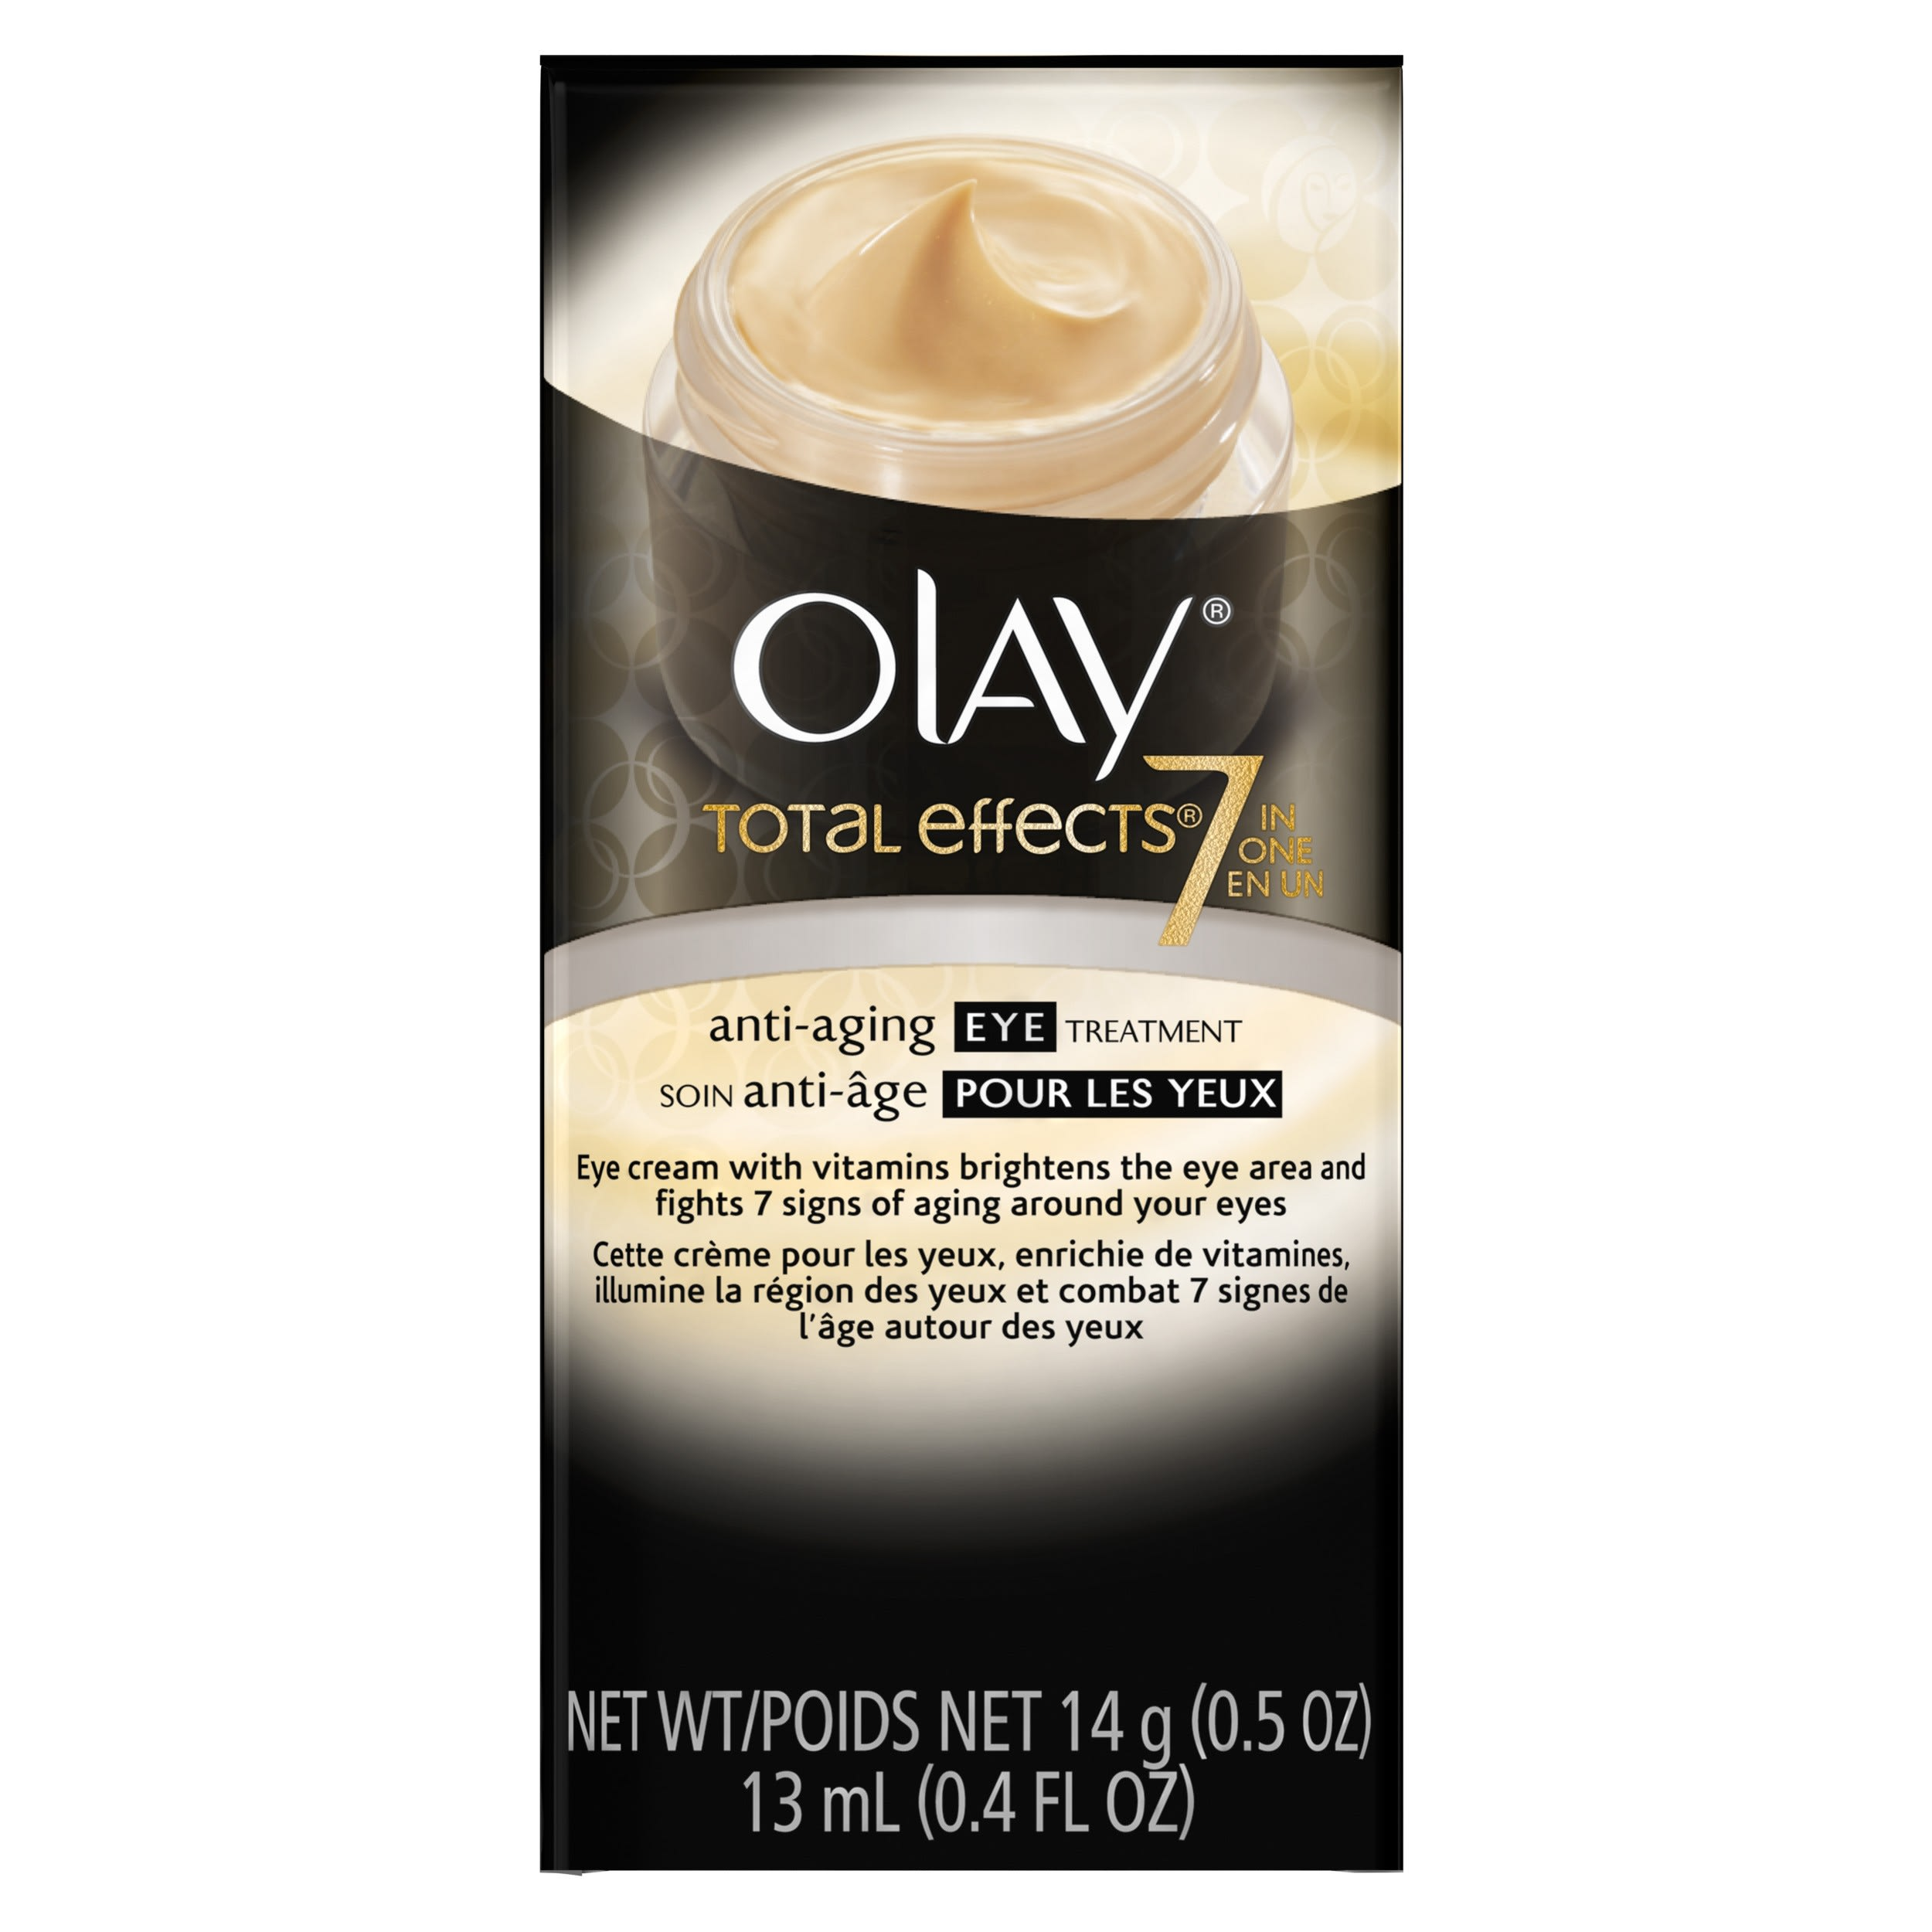 Olay Total Effects Anti-Aging Eye Treatment